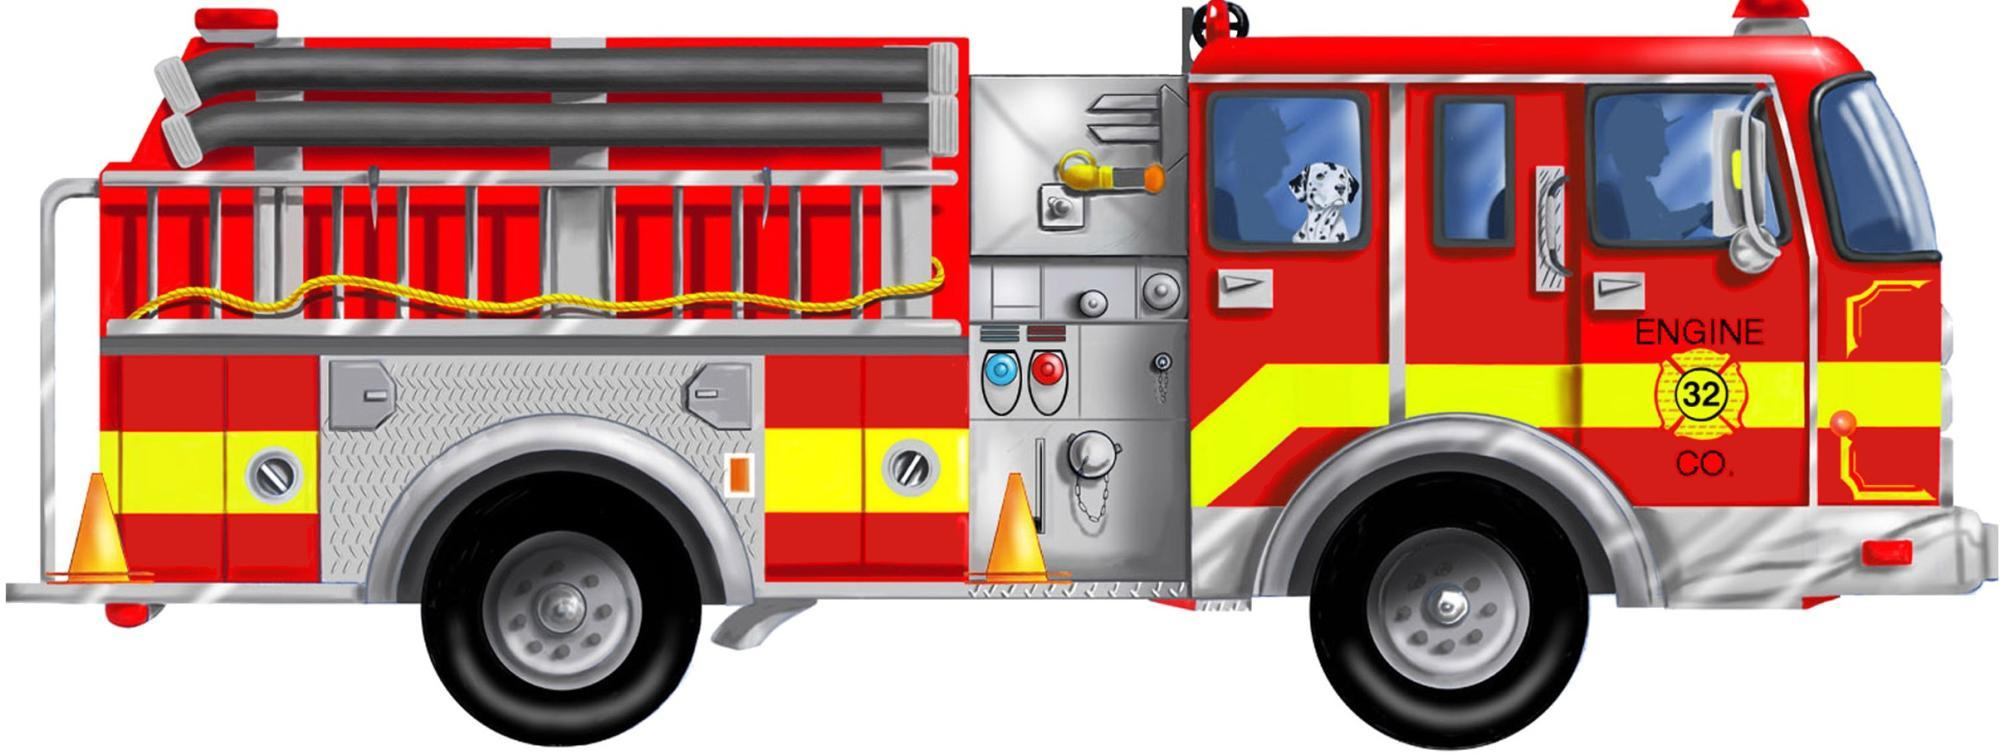 CARTOON IMAGES, ART INSERTS » firetruck (18)